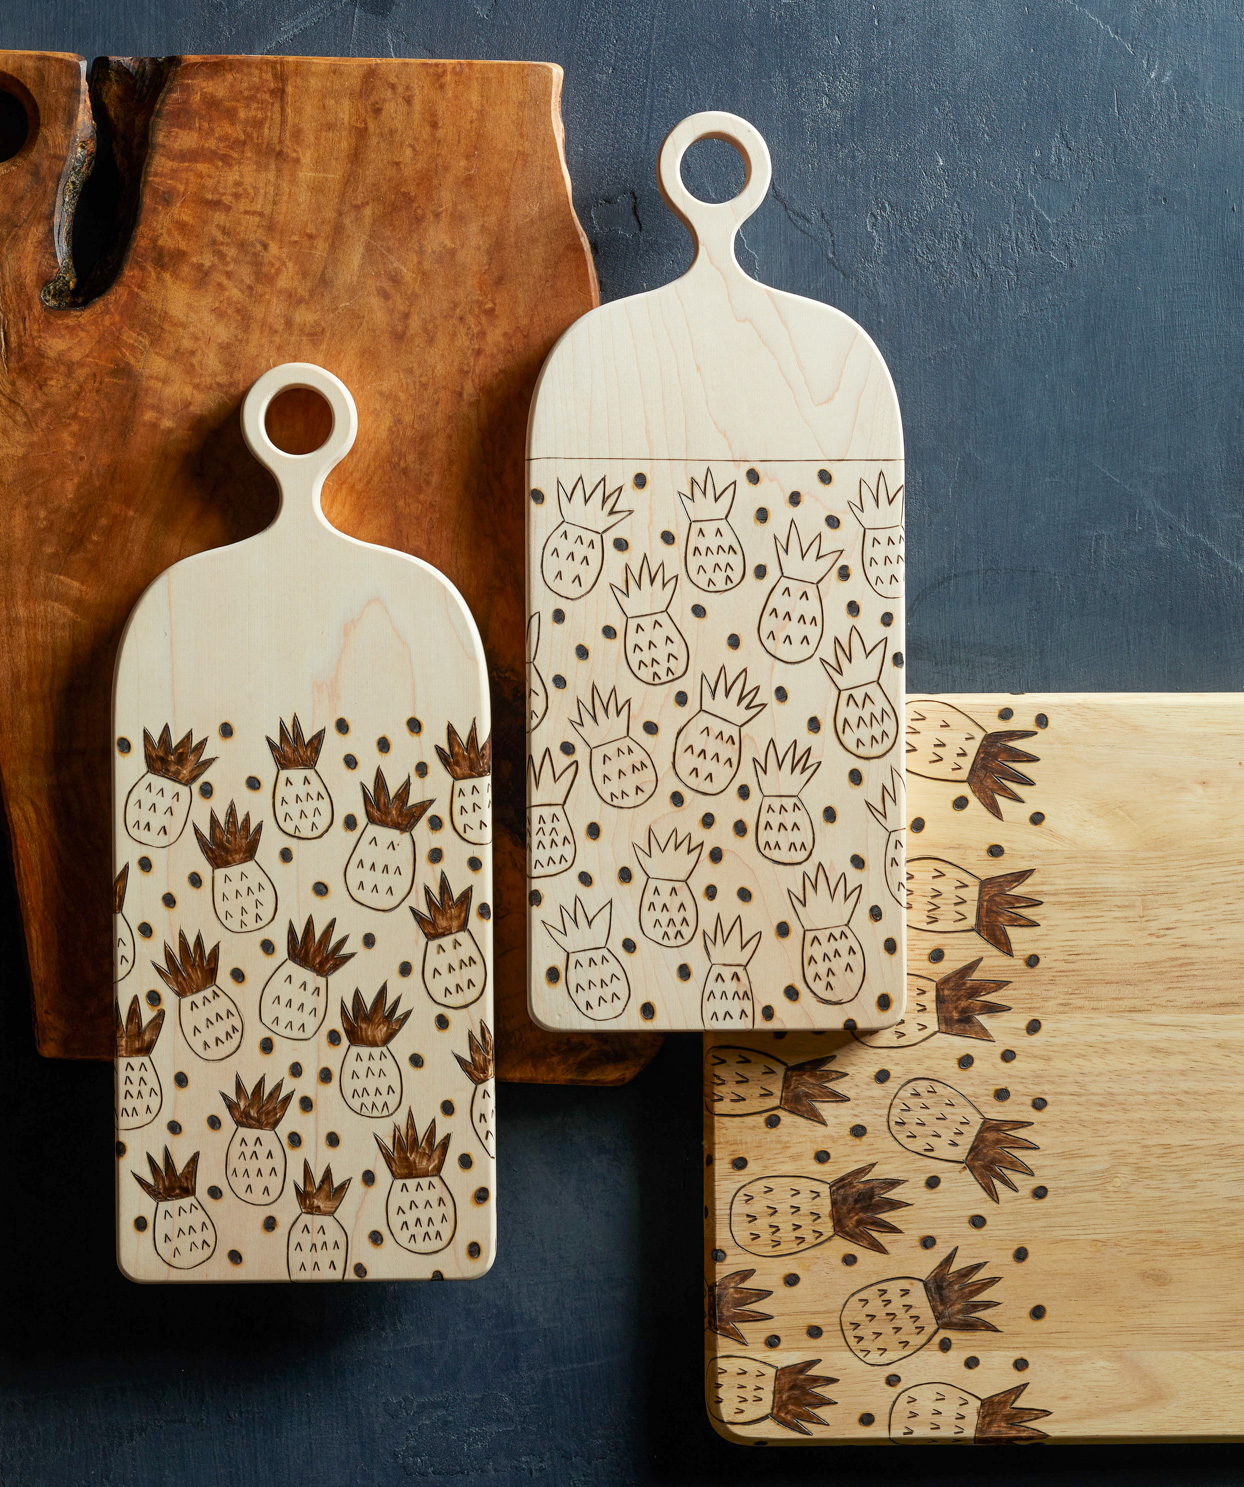 pineapple patterned carved wooden cutting boards